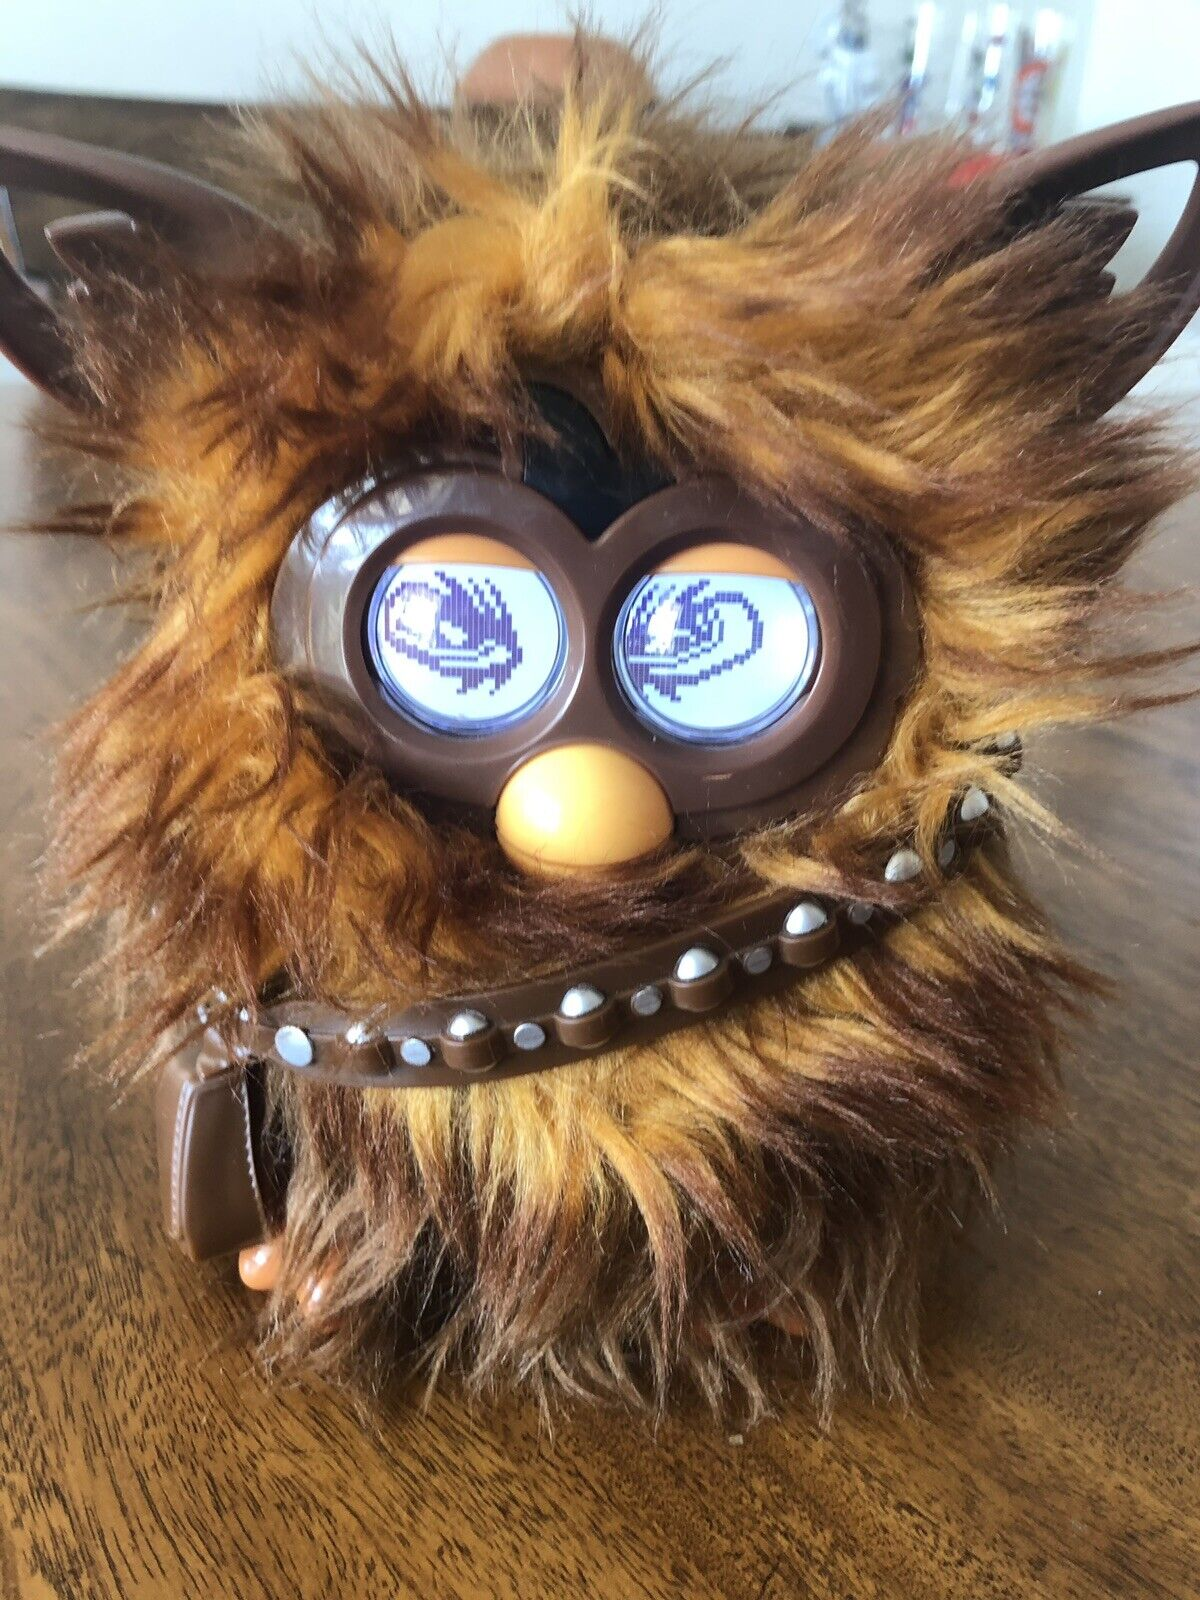 Furby Furbacca Chewbacca Star Wars Hasbro 2012 Electronic Interactive Toy W box